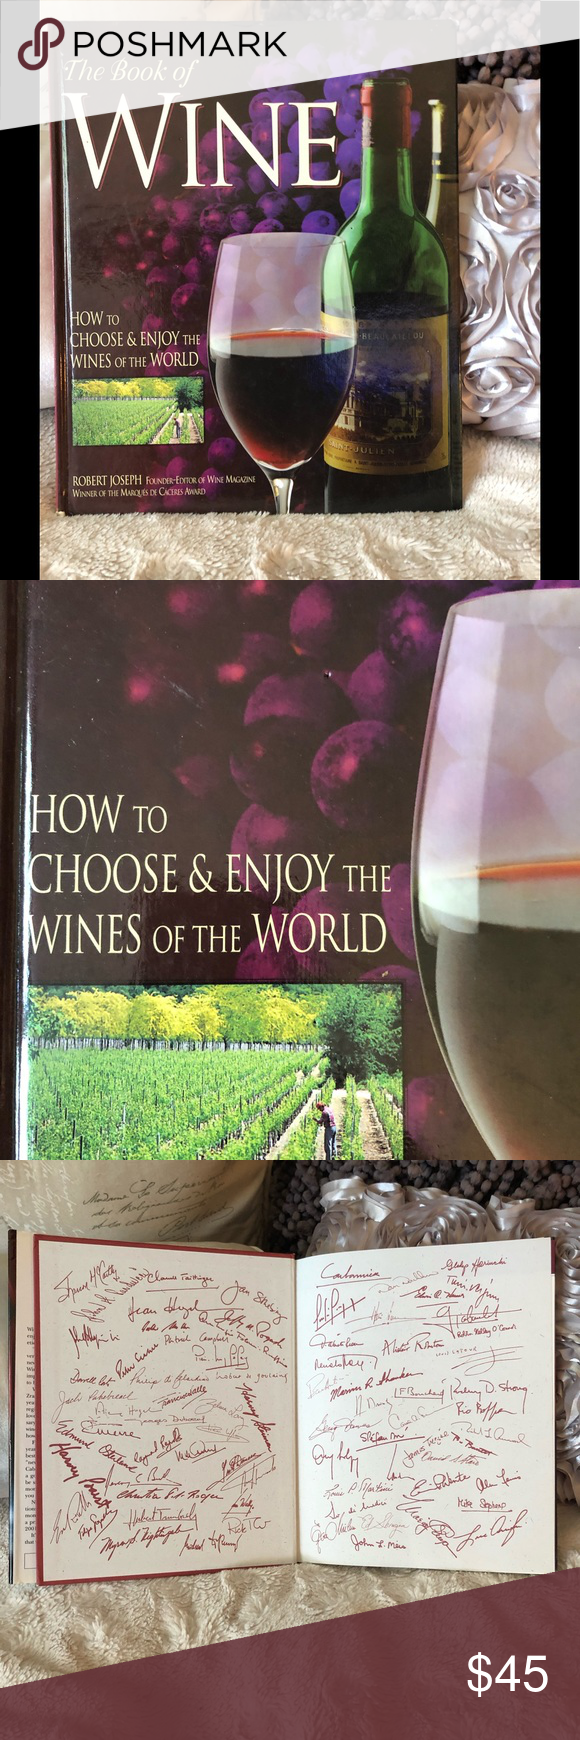 Coffee Table And Educational Wine Book With Images